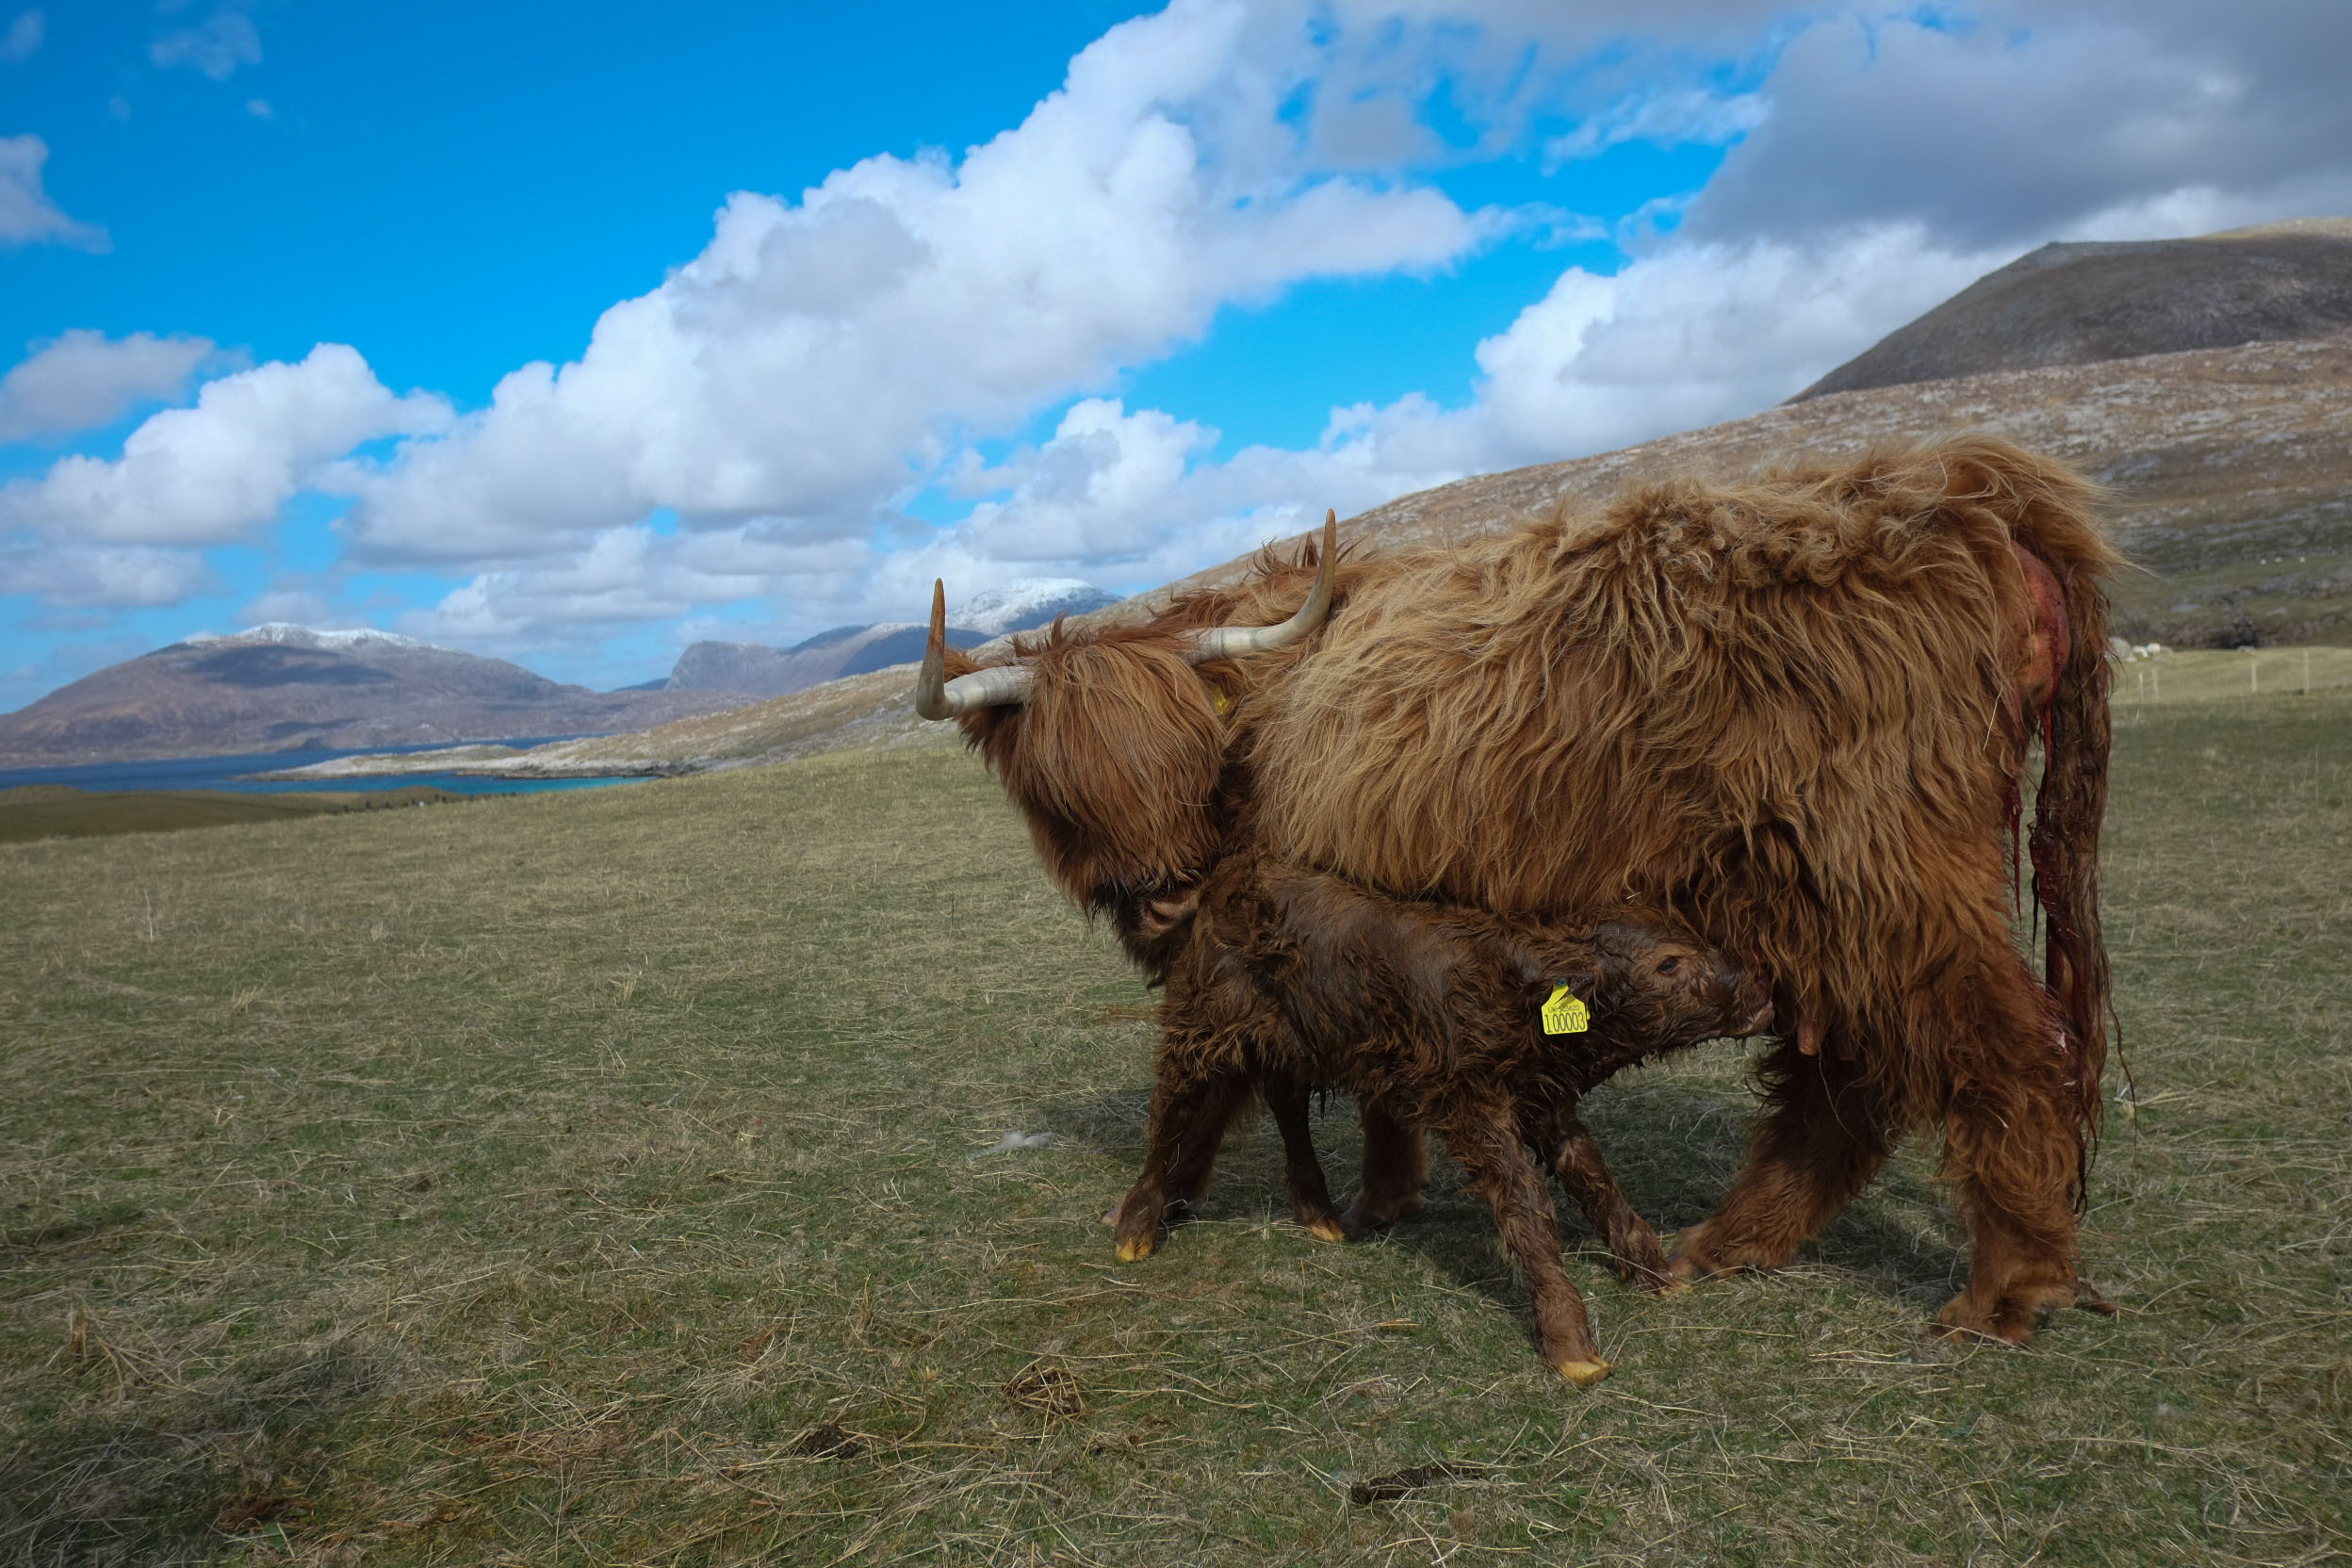 On  a walk, just inland from the dunes, I chanced upon this highland calf being born, licked fluffy,   take his first steps and feed;   all within half an hour! What a gift.